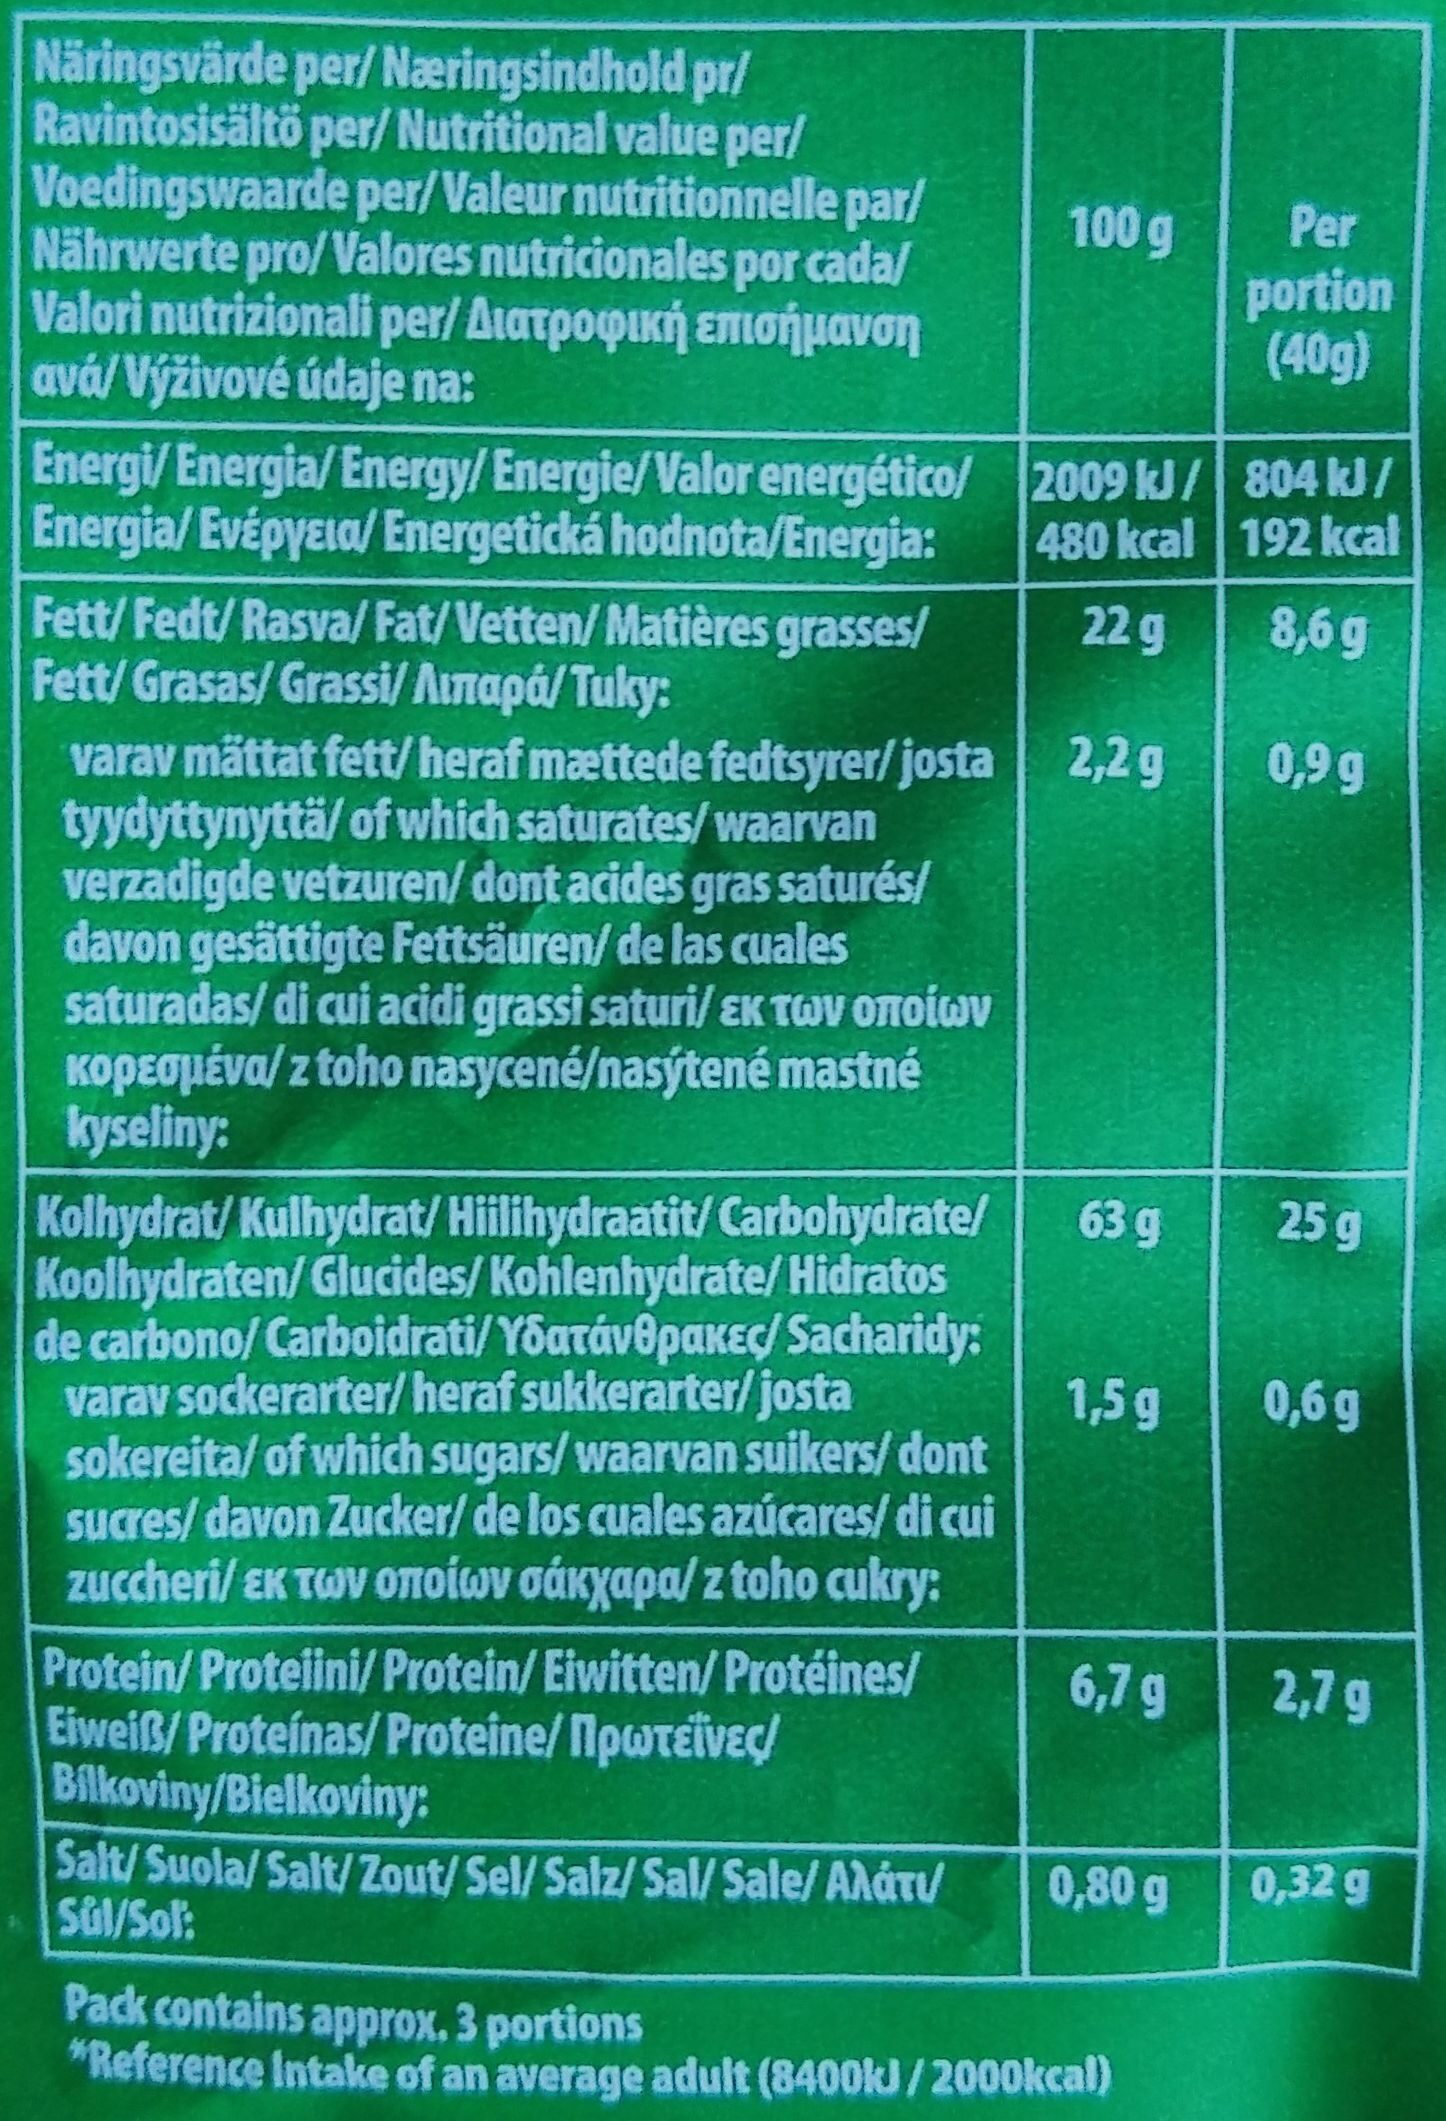 Tortilla Chpis - salted - Nutrition facts - en